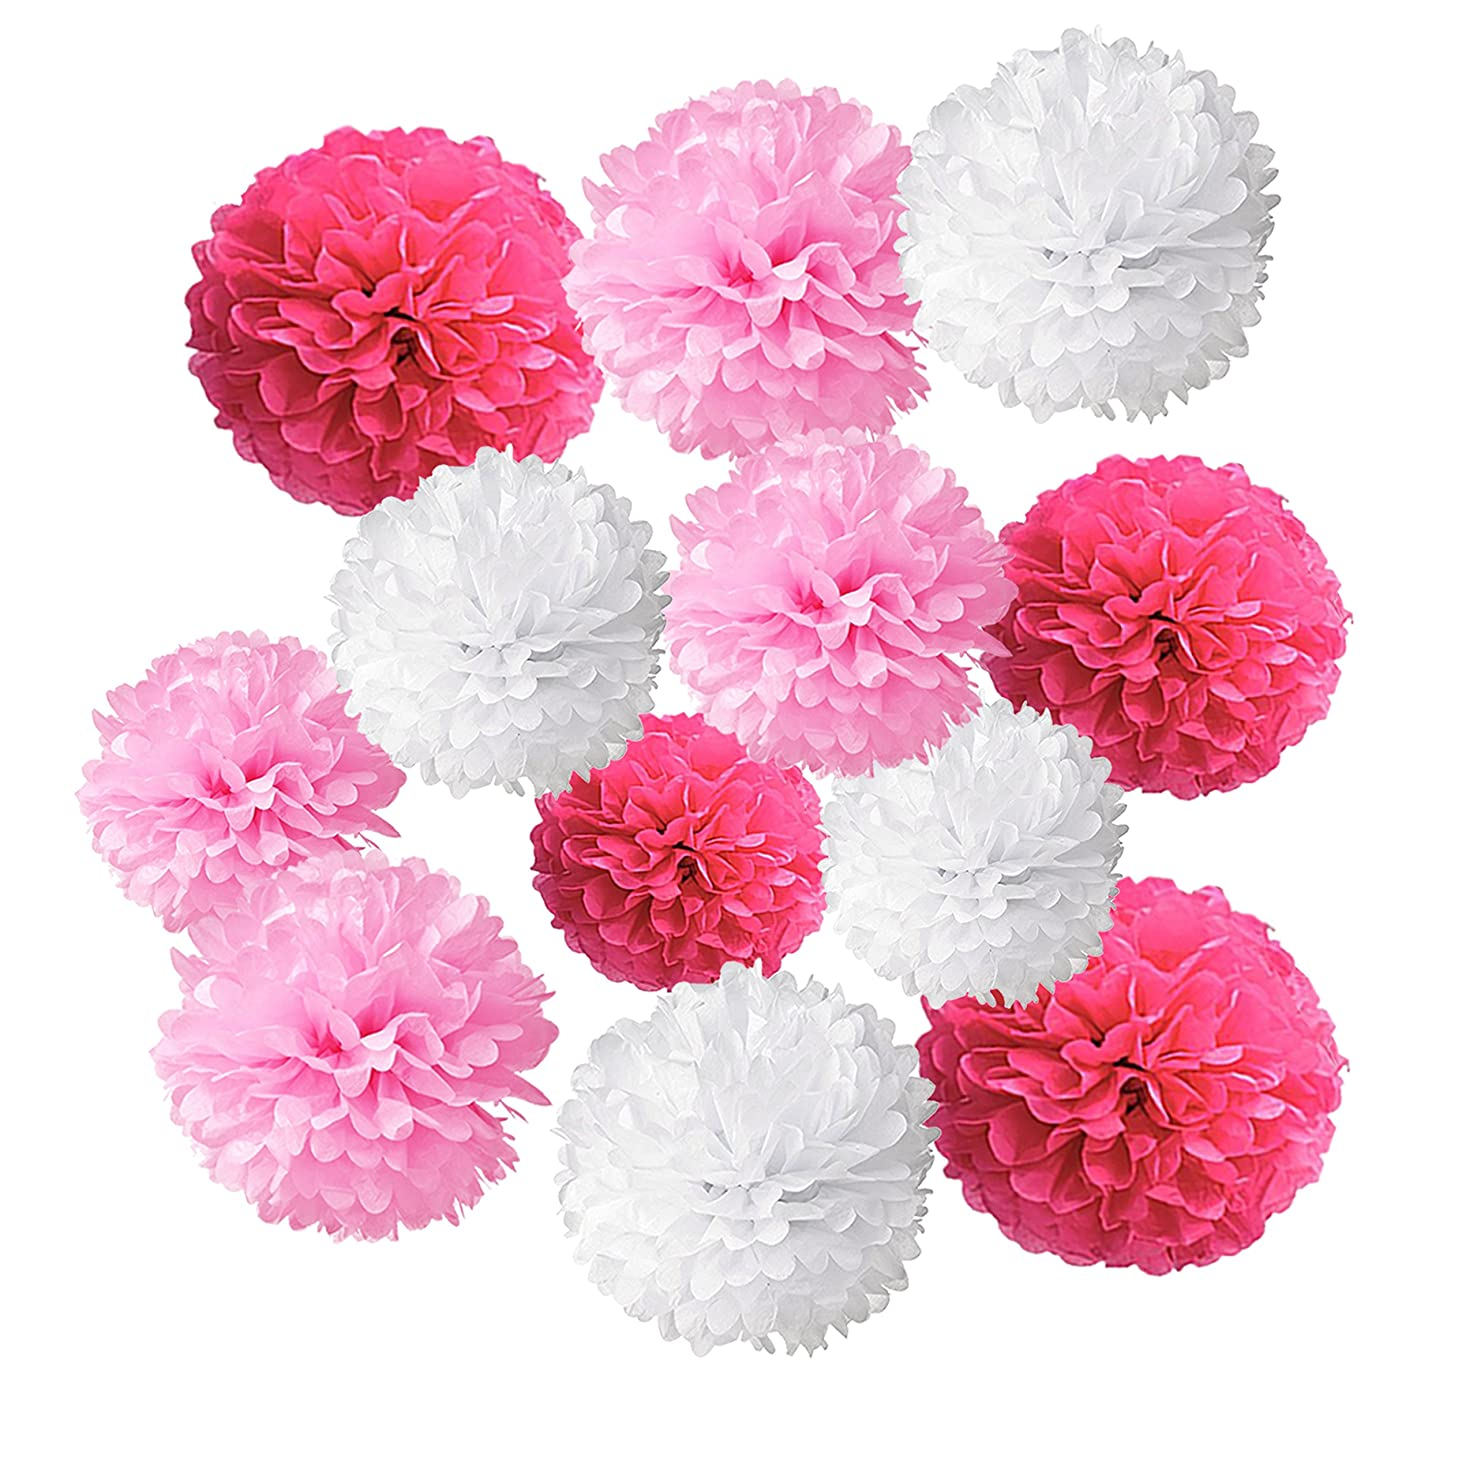 Wartoon Tissue Paper Pom Poms Flowers for Wedding Birthday Party Baby Shower Decoration, 12 pieces (Hot Pink, Pink and White)